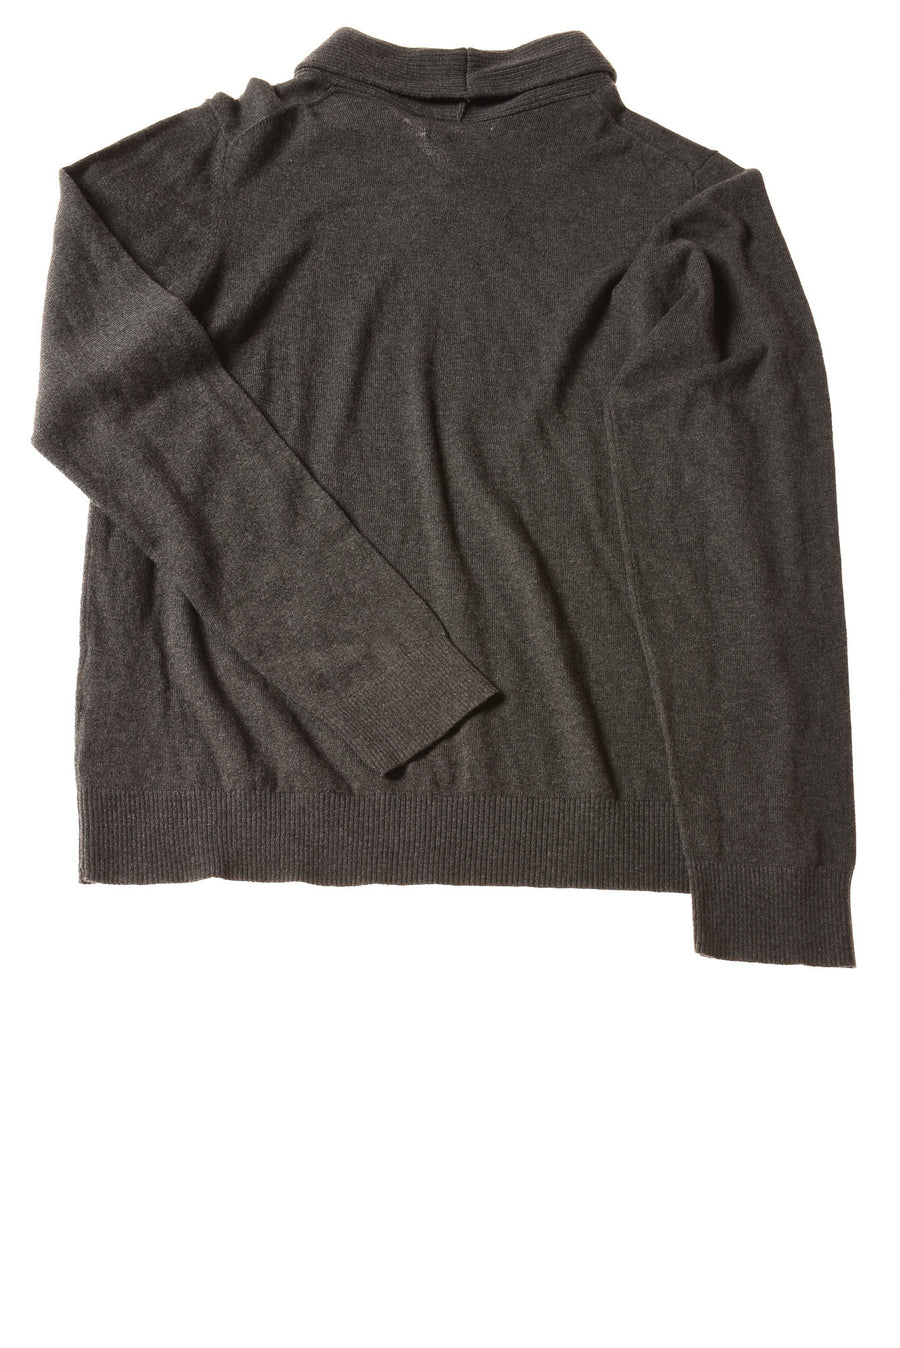 NEW Marc Anthony Women's Sweater X-Large Black